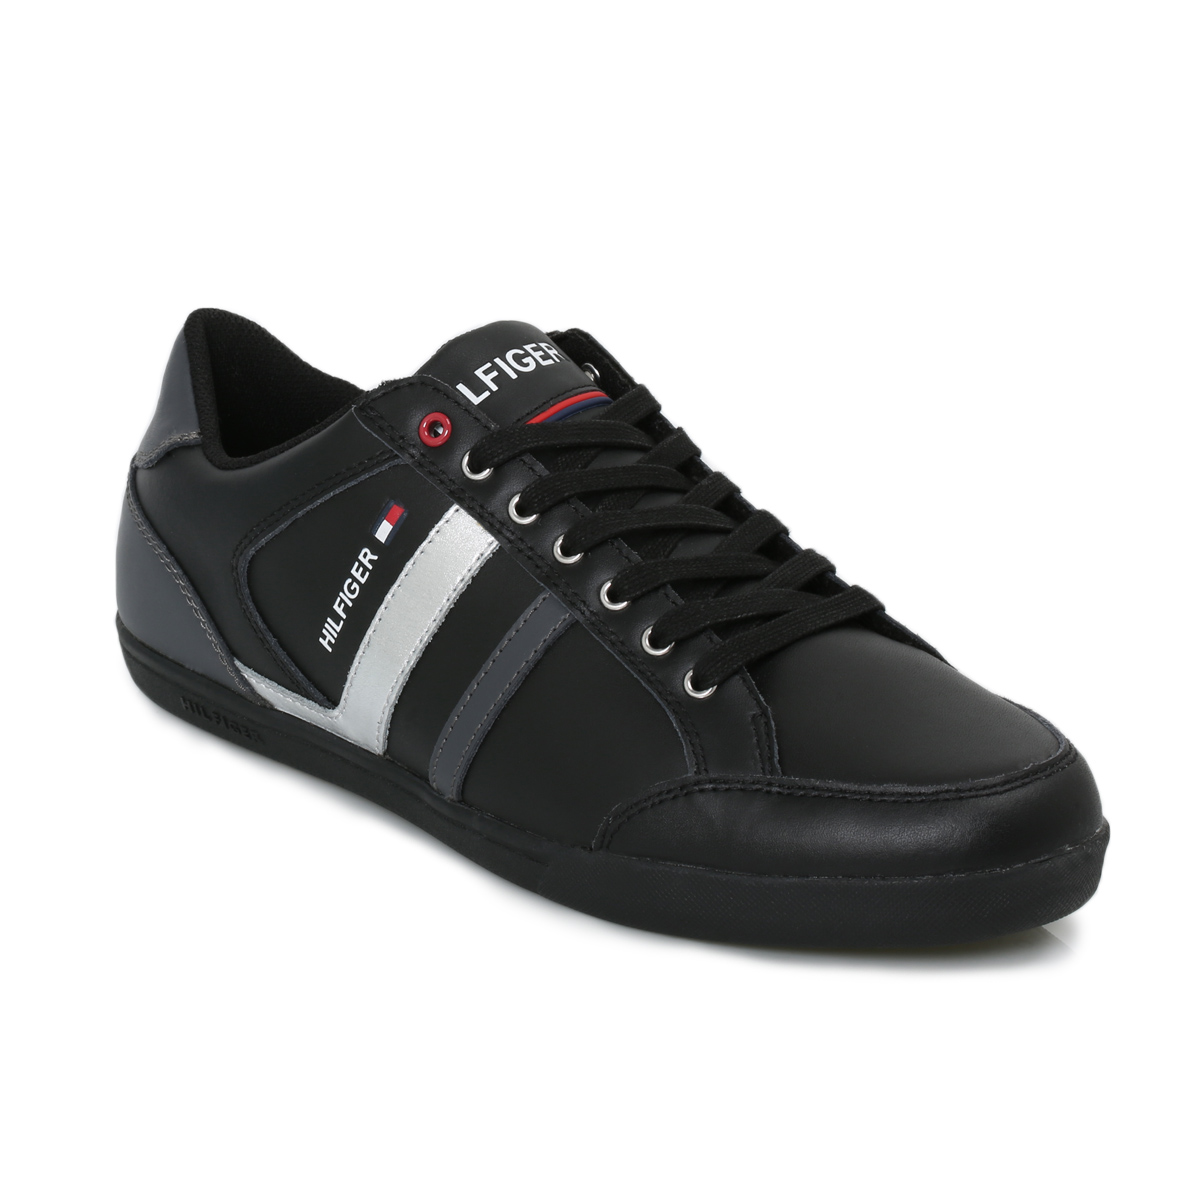 tommy hilfiger black rickey suede trainers sneakers shoes. Black Bedroom Furniture Sets. Home Design Ideas